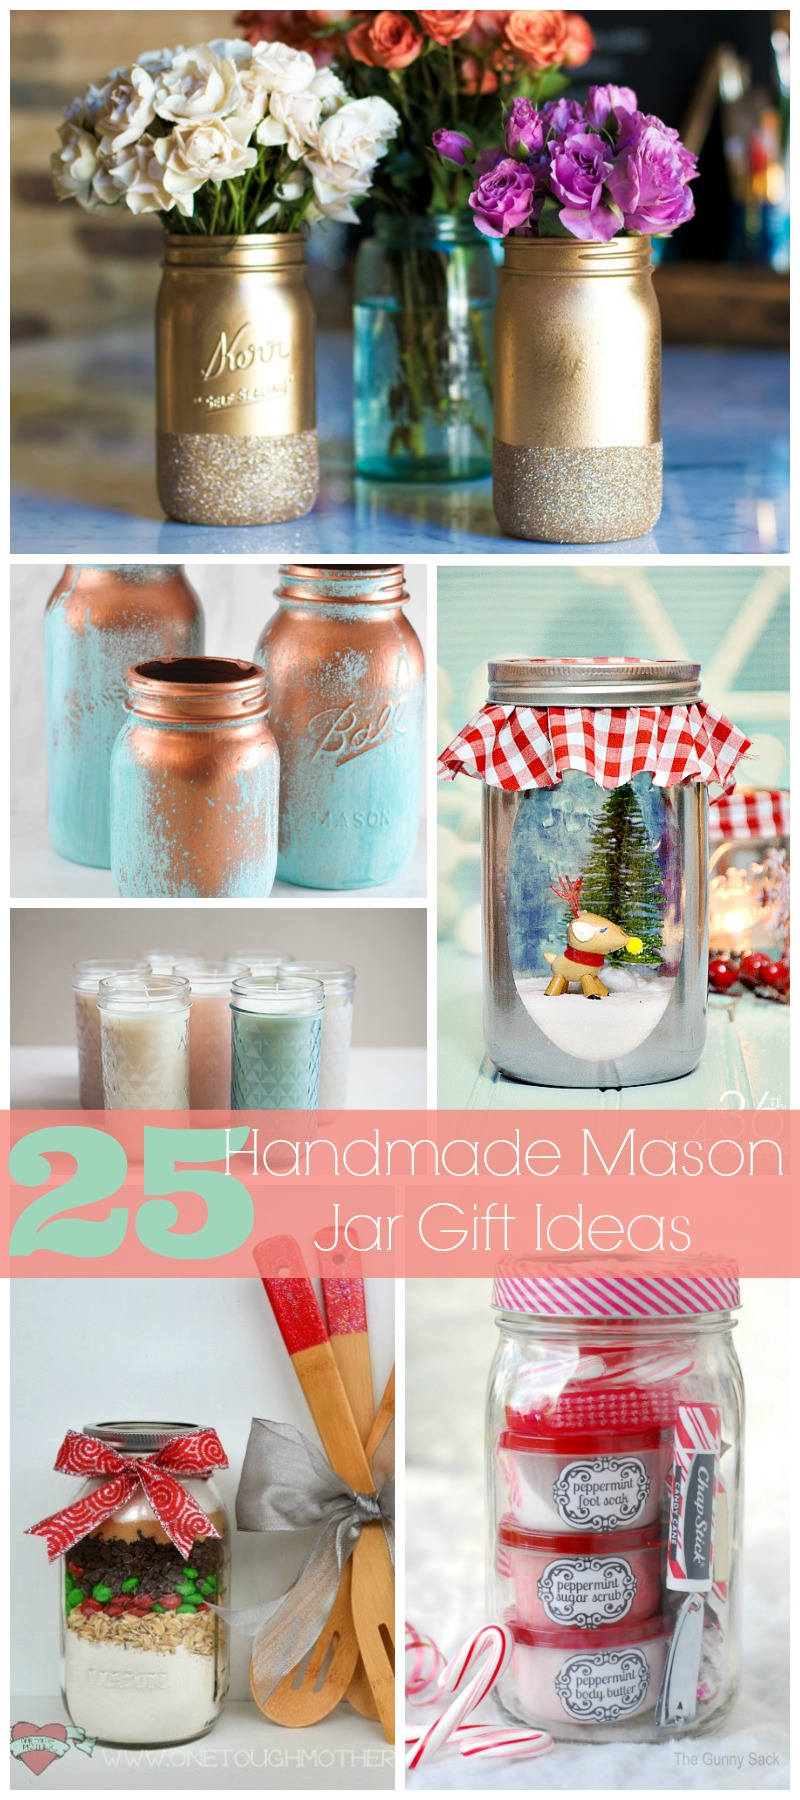 25 Handmade Mason Jar Gift Ideas Collage  |  Sweet Tea & Saving Grace